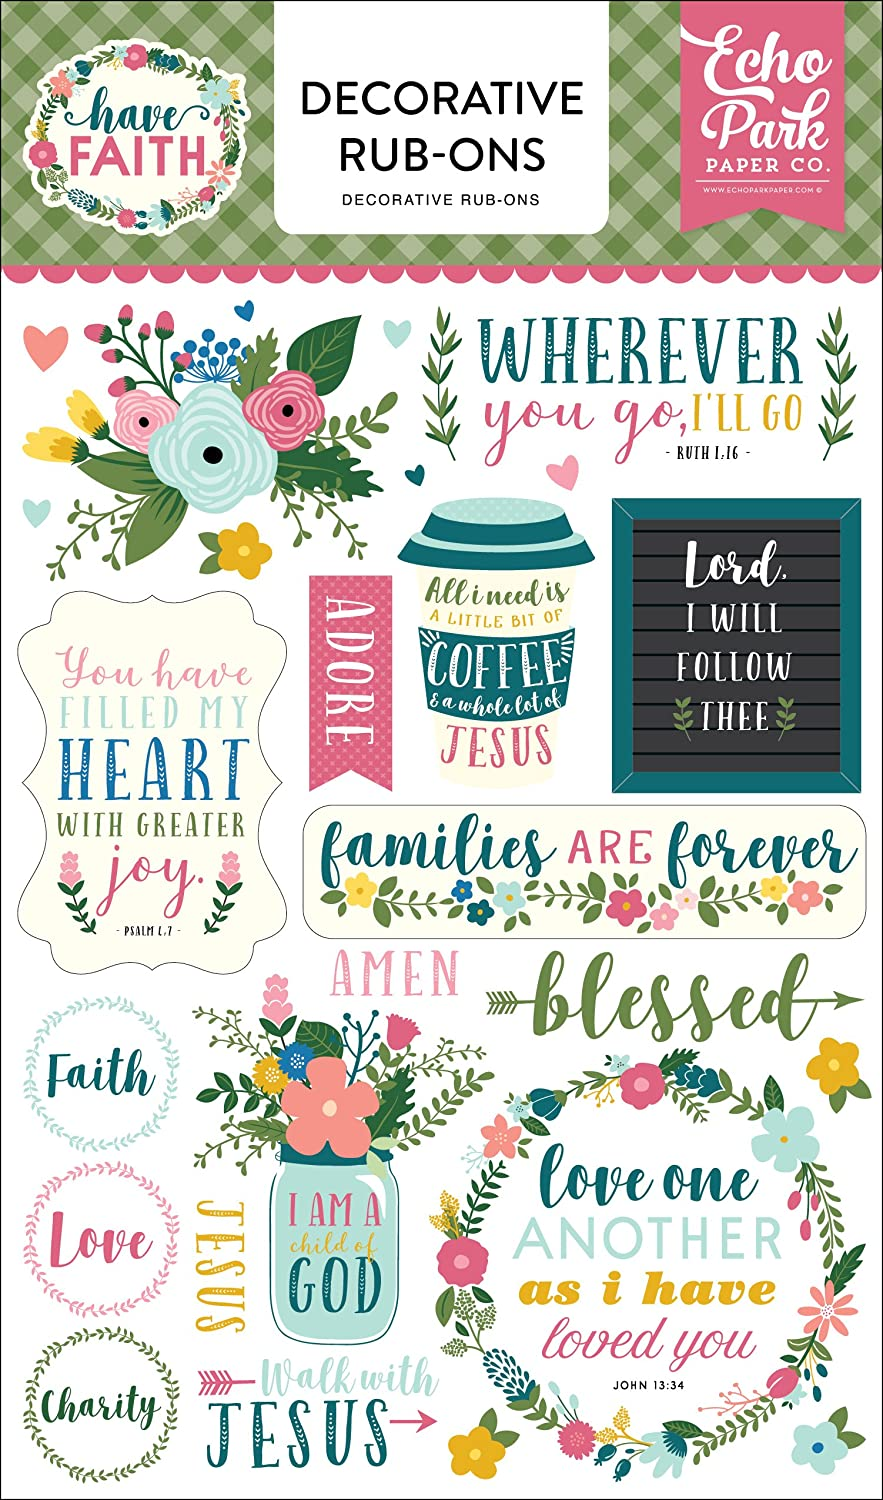 Echo Park Paper Company HAF152065 Have Faith Rub Ons, Purple, Pink, Mint Green, Teal, Coral B07C29MHB3